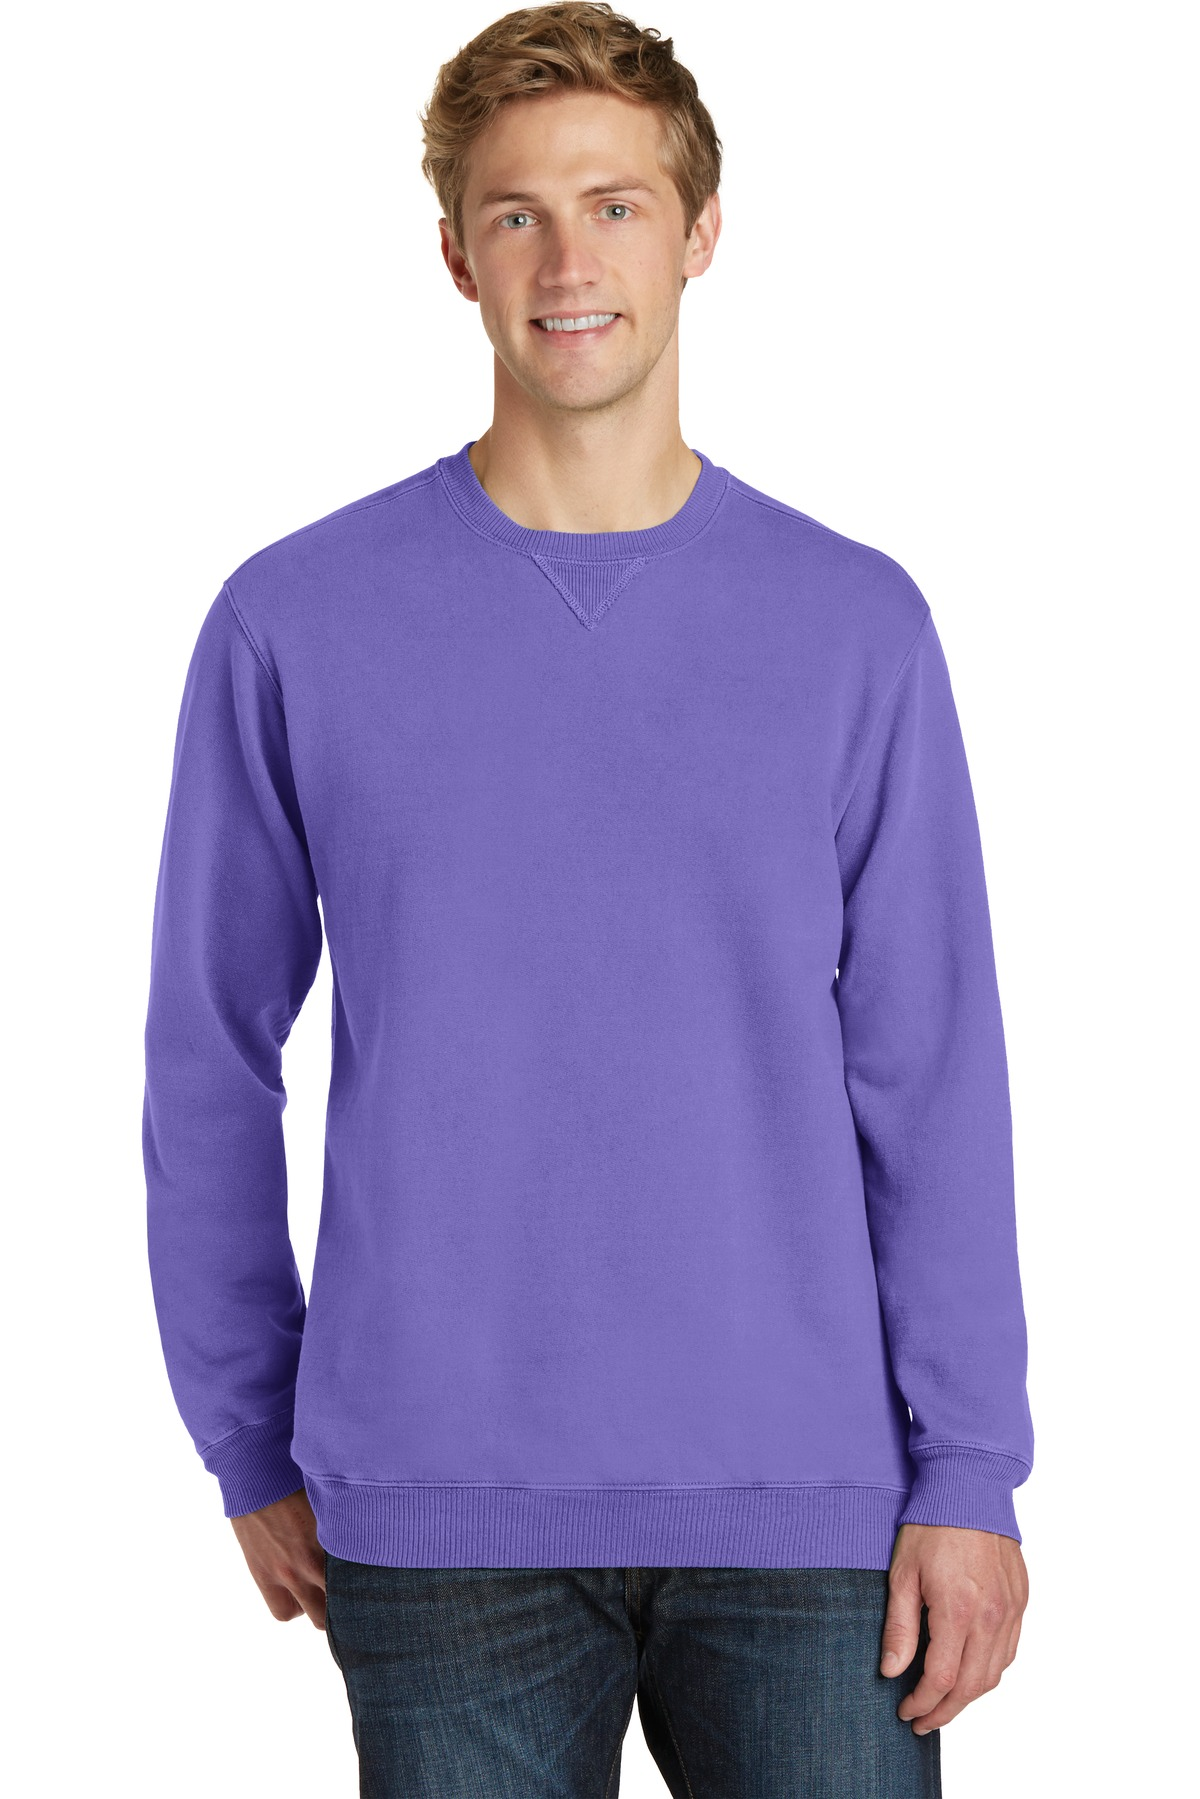 Port & Company ®  Beach Wash ™  Garment-Dyed Sweatshirt PC098 - Amethyst